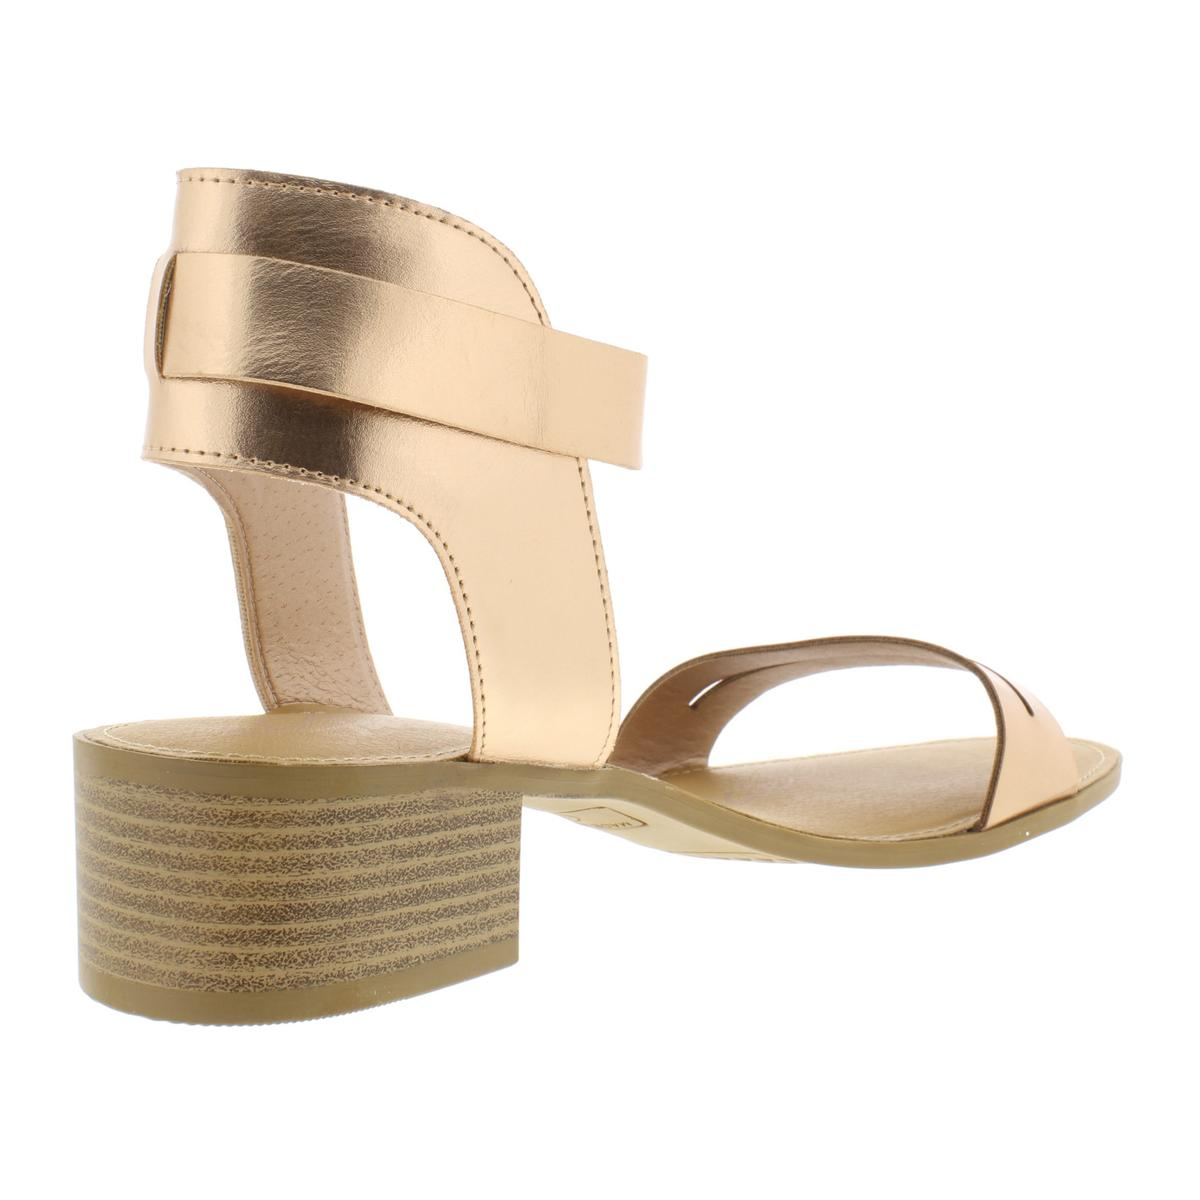 American Rag Womens Alecta Faux Leather Stacked Party Heels Shoes BHFO 7080